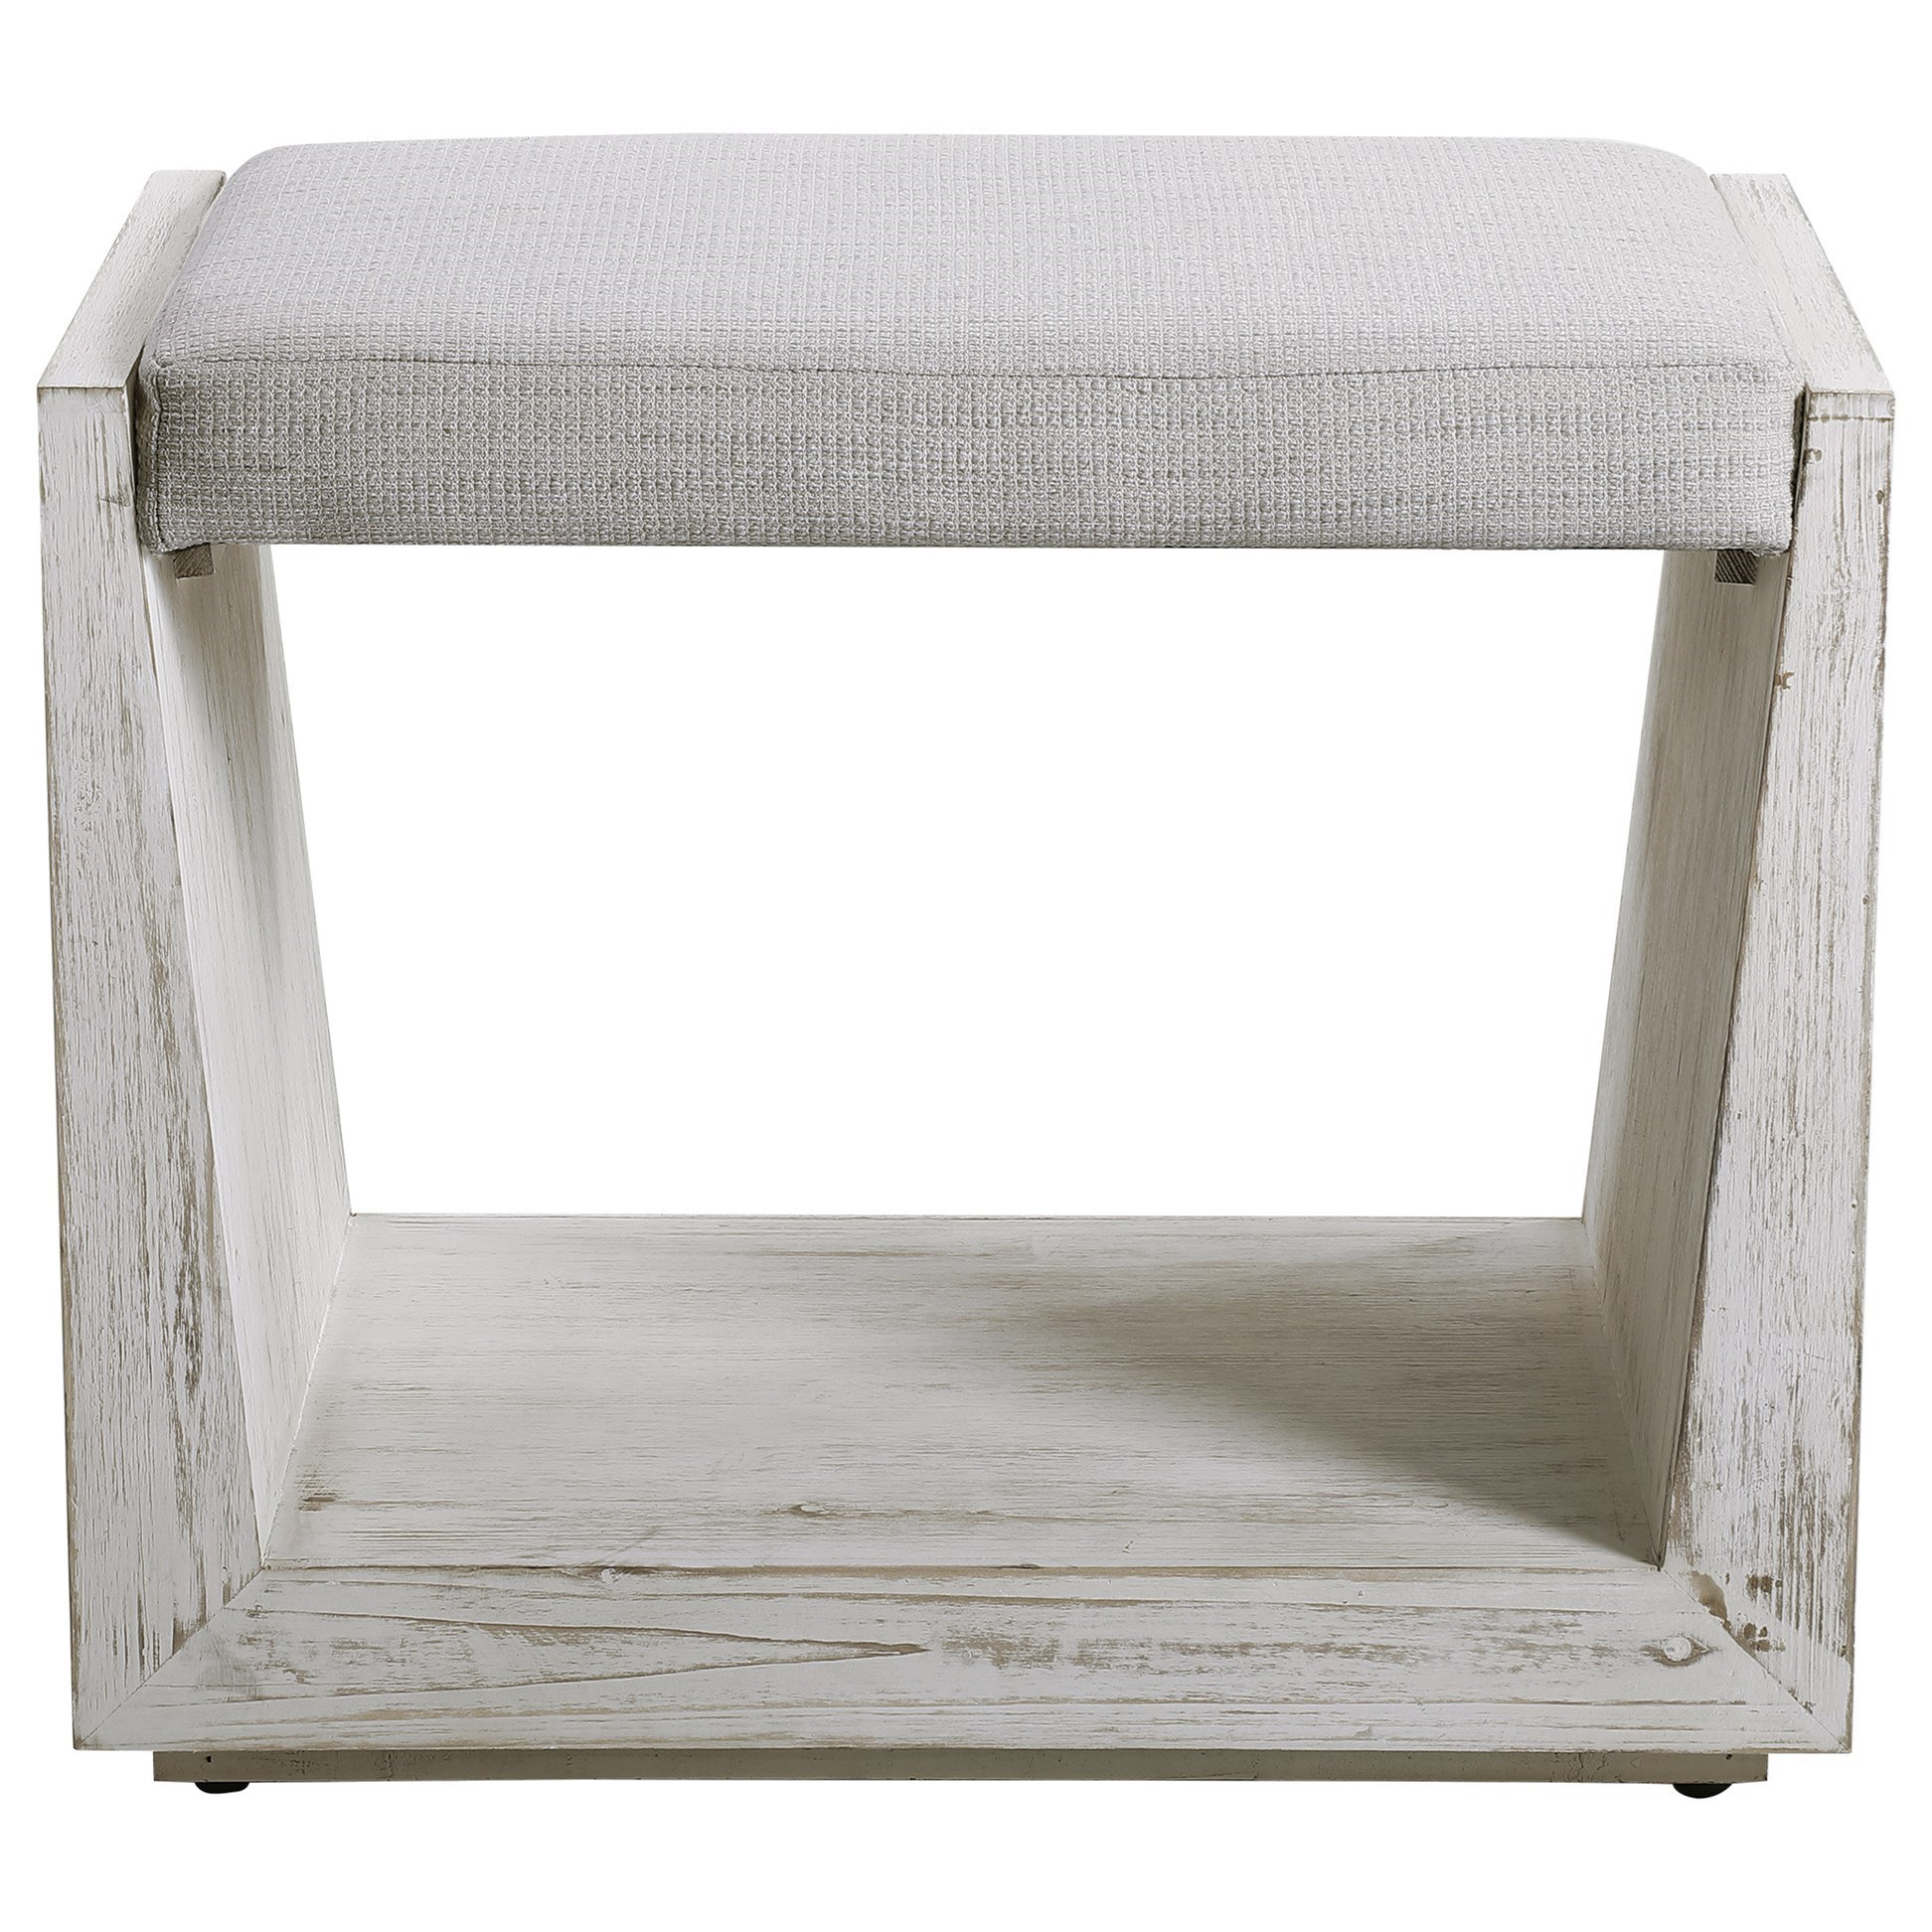 Accent Furniture - Benches Cabana White Small Bench by Uttermost at Factory Direct Furniture